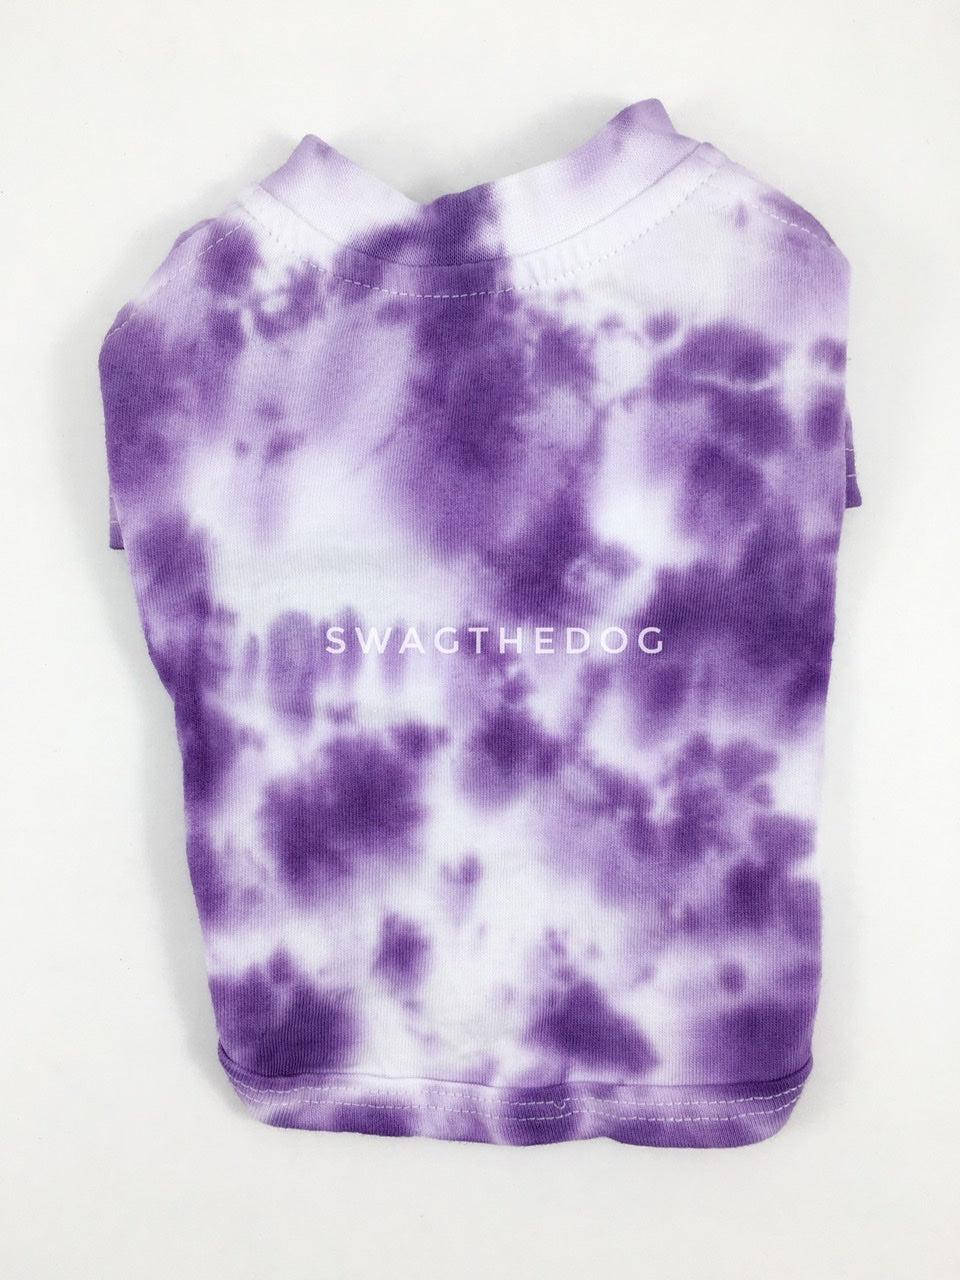 Swagadelic Purple Tie Dye Tee - Product back view. The hand tie-dyed tee with Purple